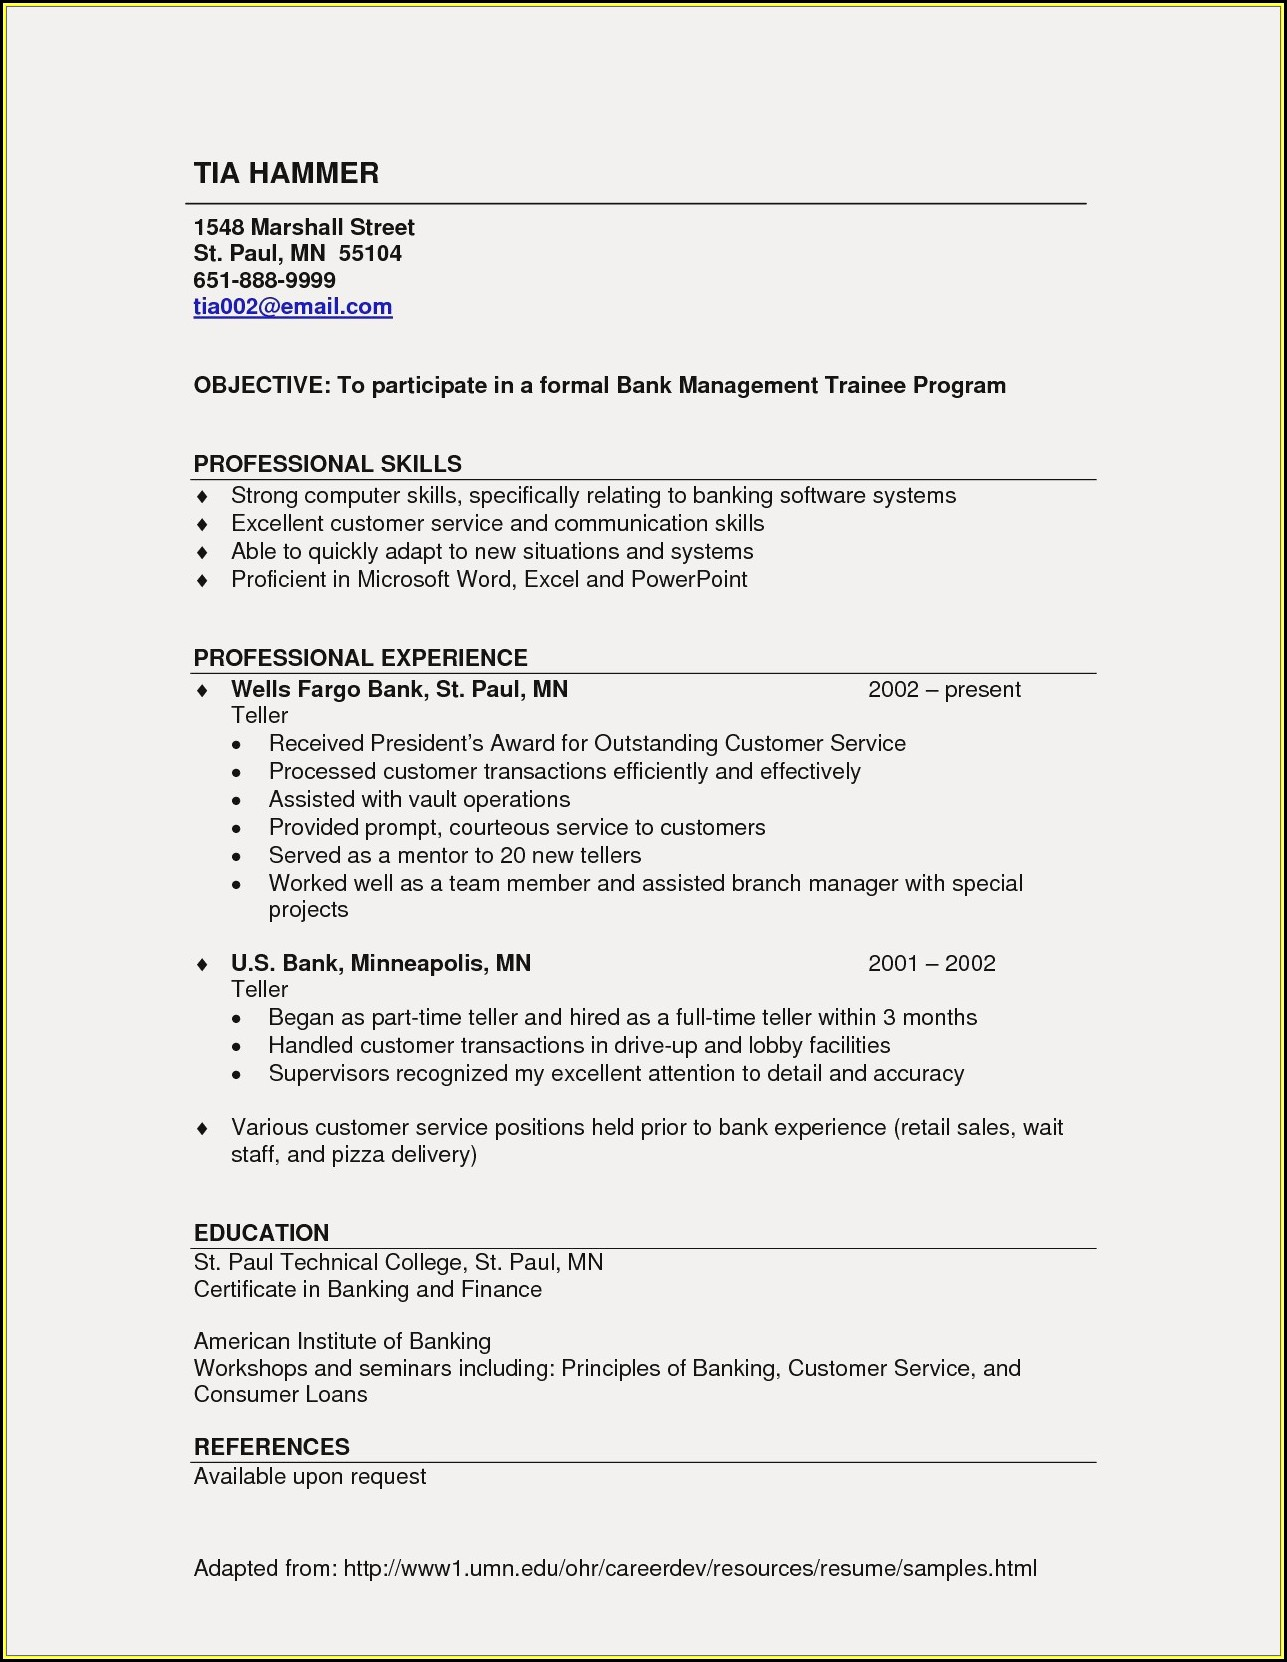 Resume Writing Services St Paul Mn